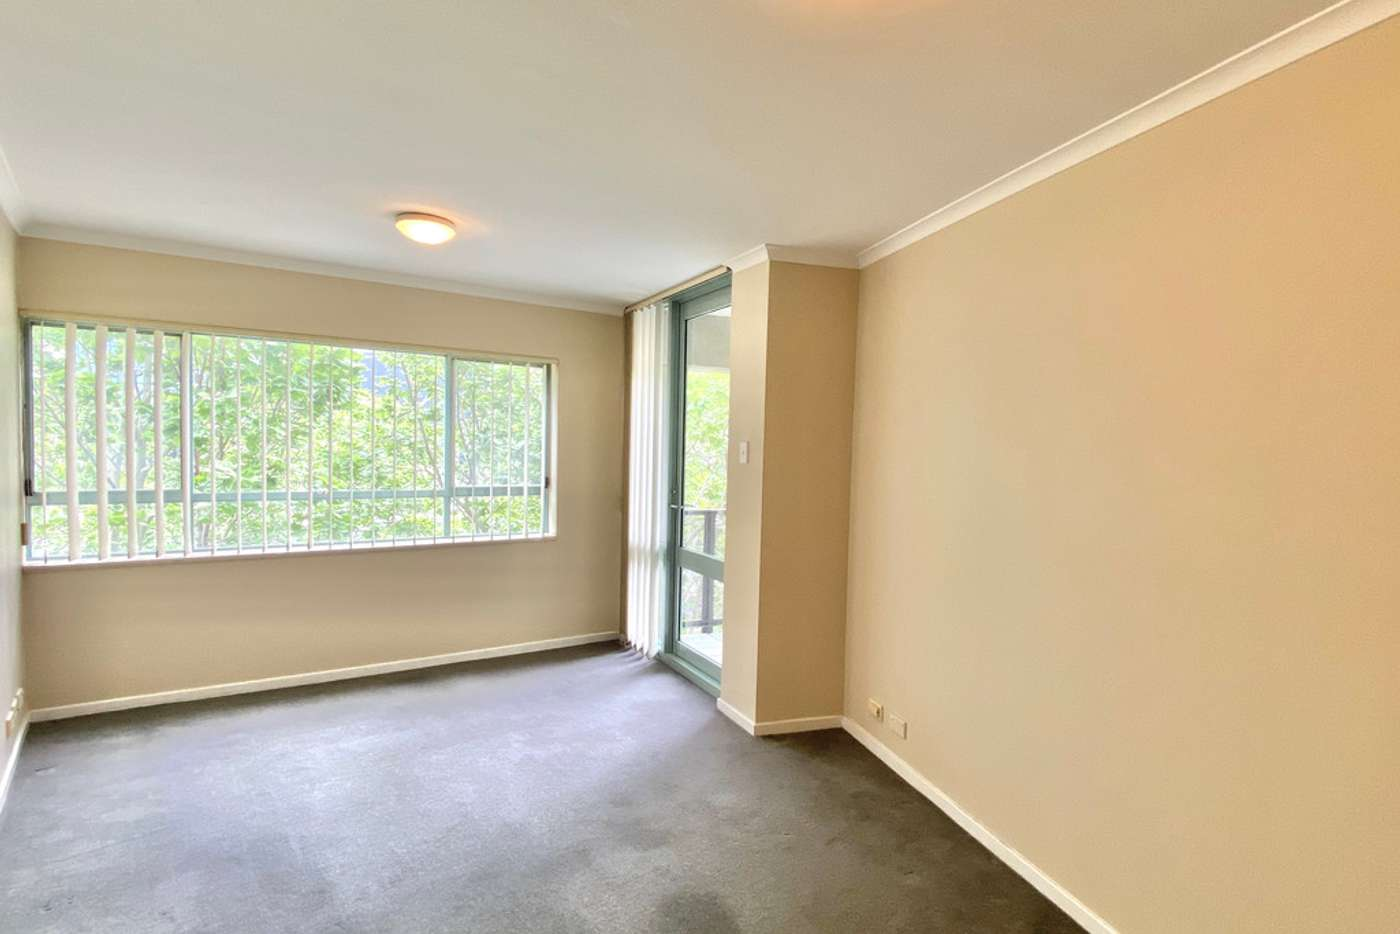 Main view of Homely apartment listing, 85/155 Missenden Road, Newtown NSW 2042